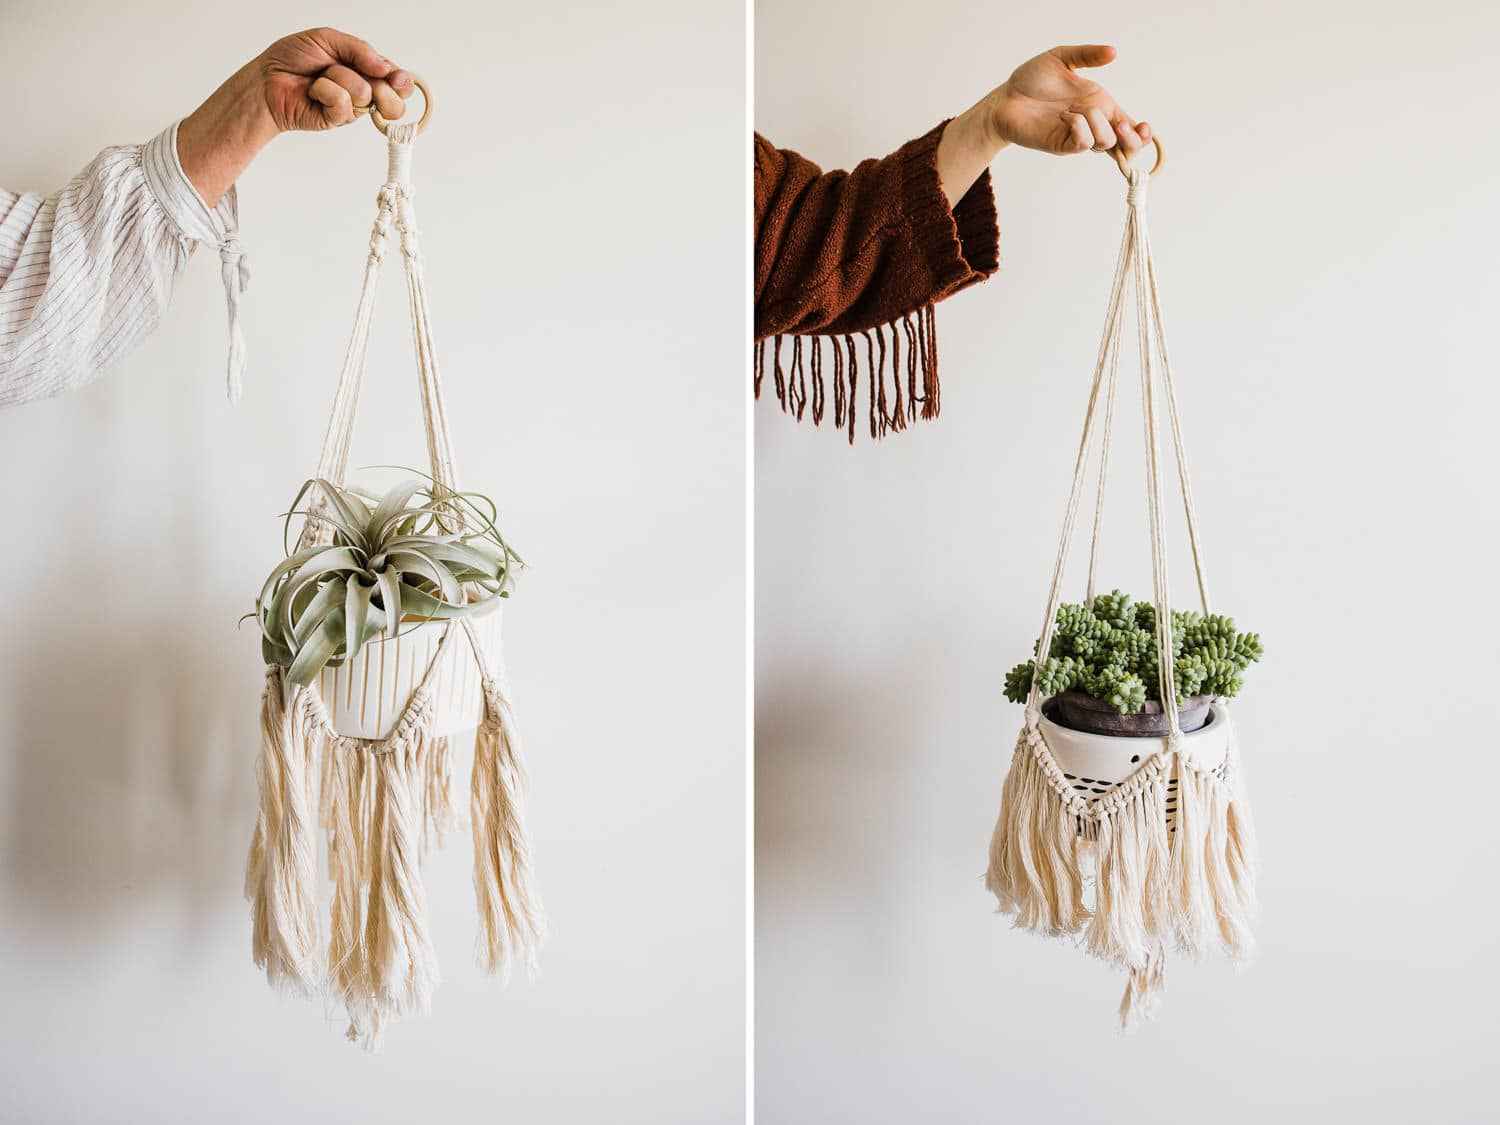 small business brand photography - plants and macrame